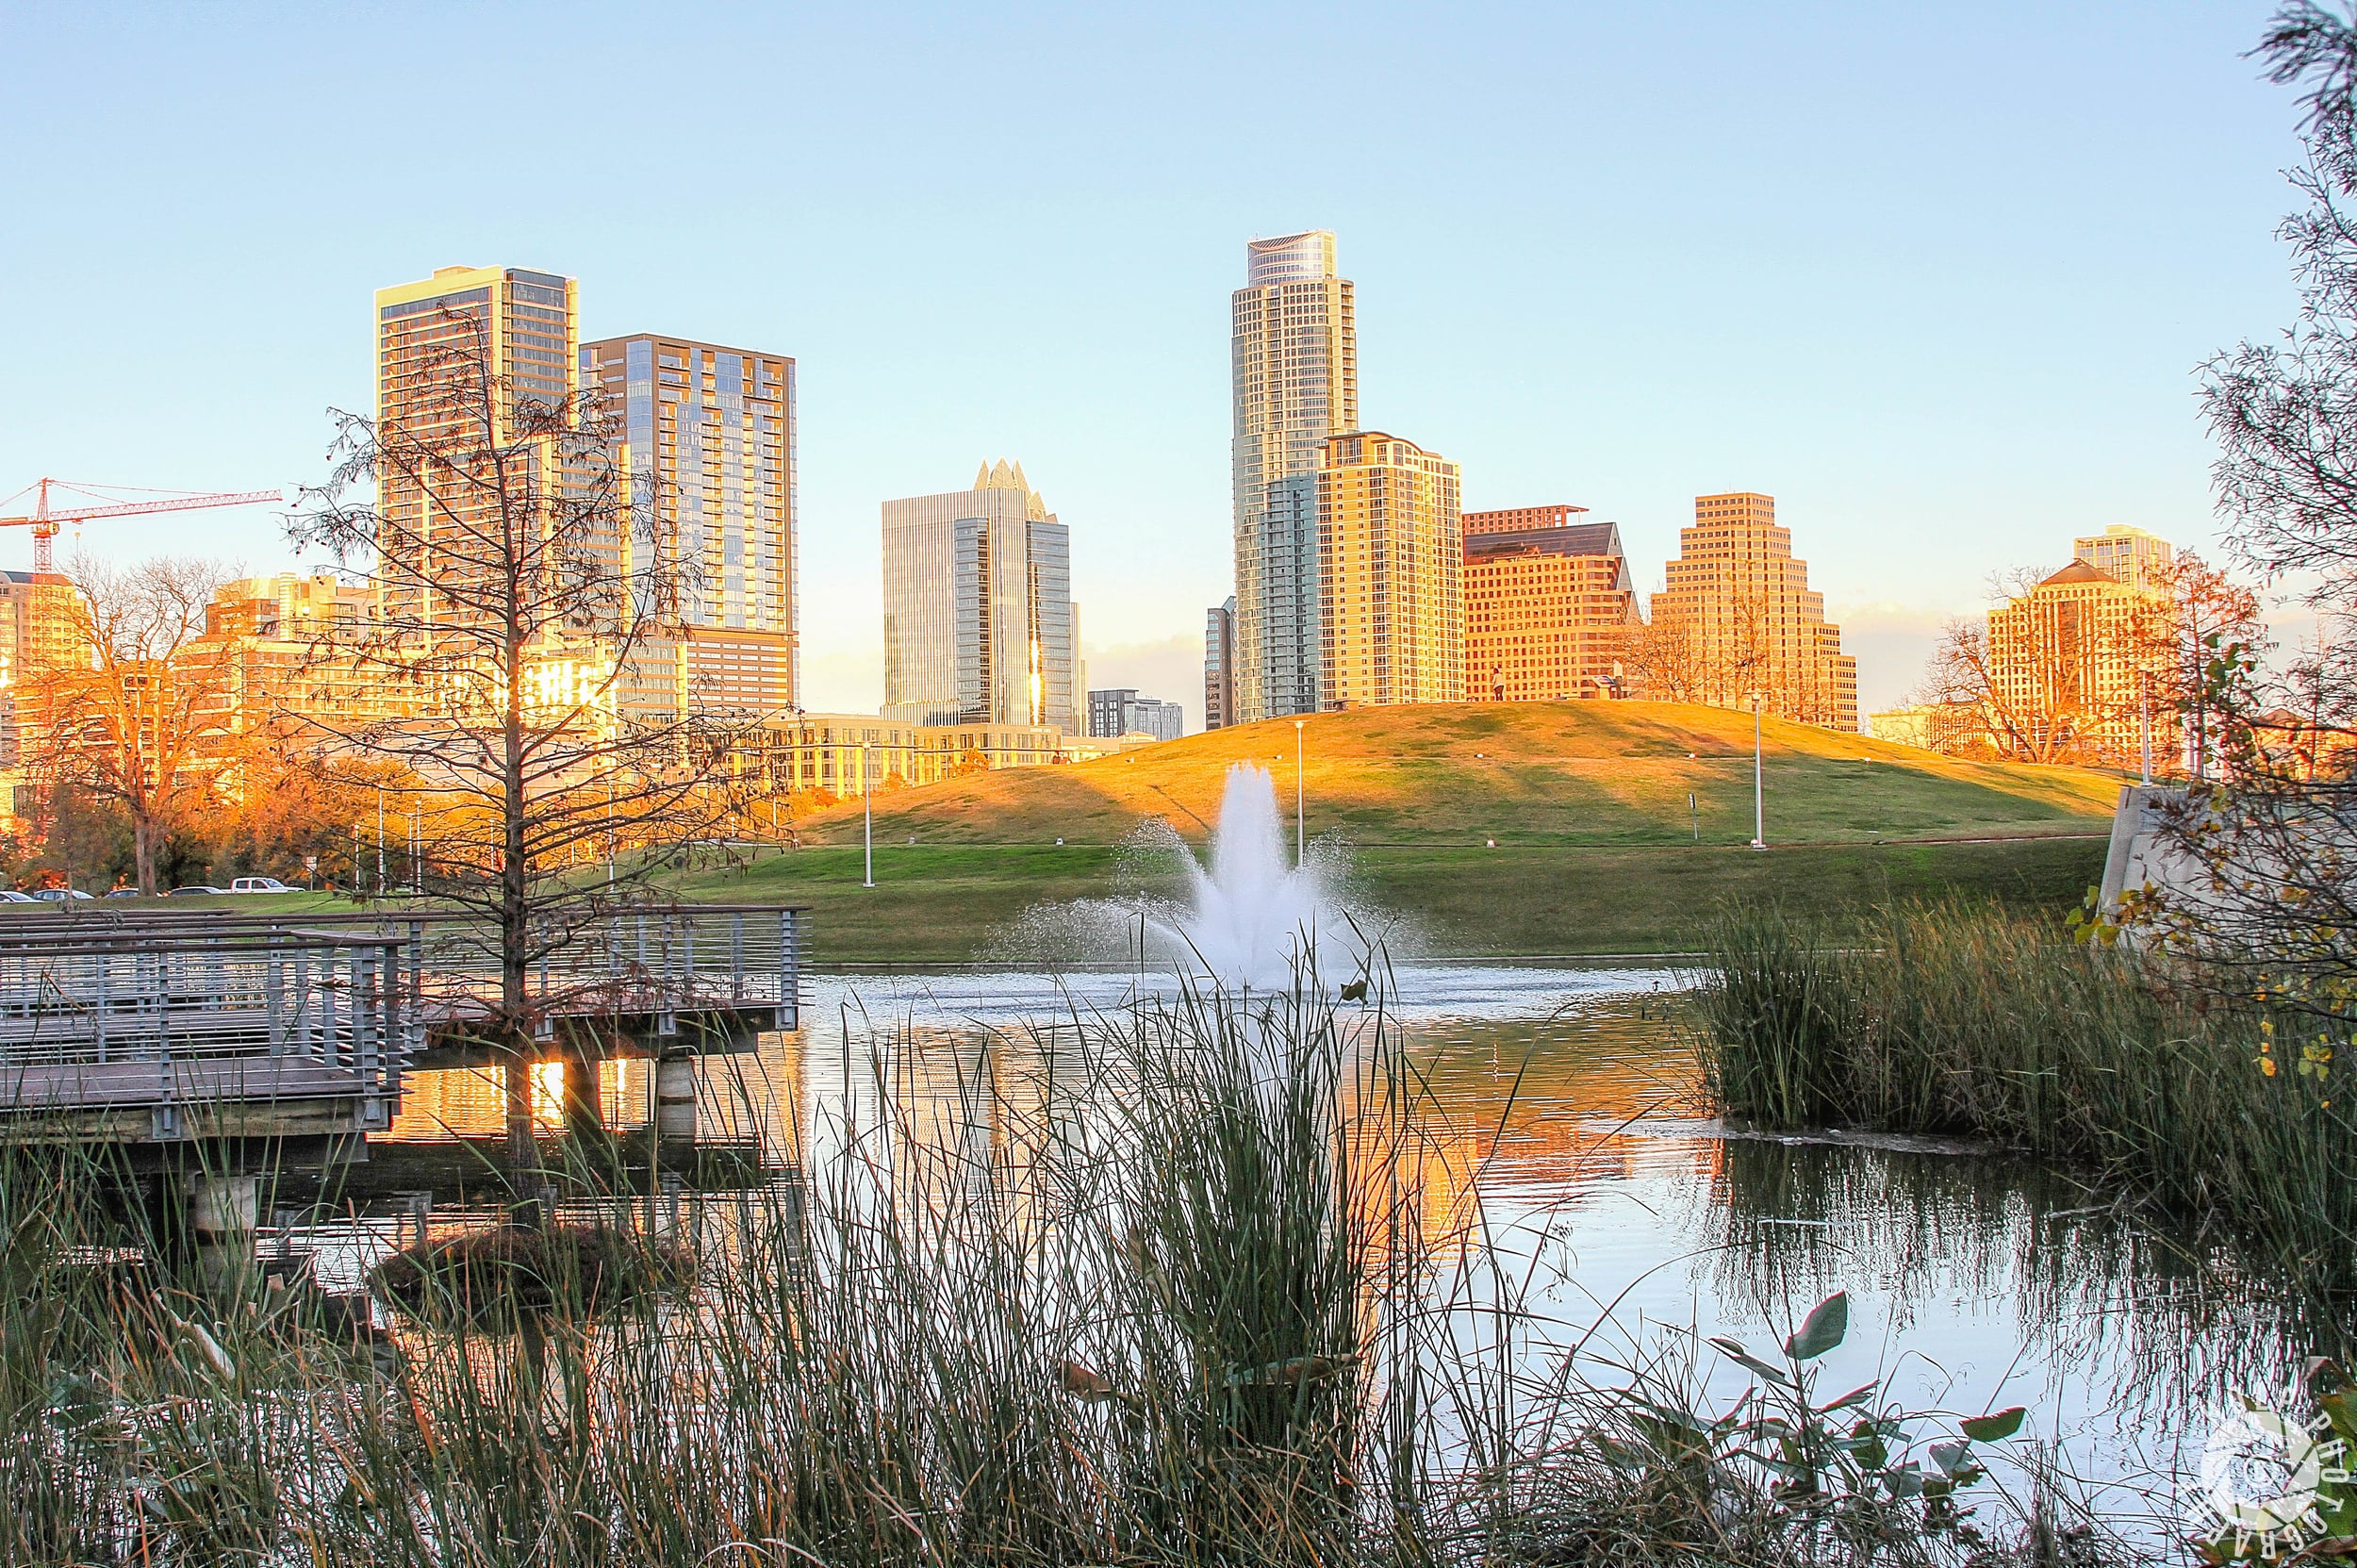 Beautiful sunset shot of the city over fountain and Doug Sahm Hill.